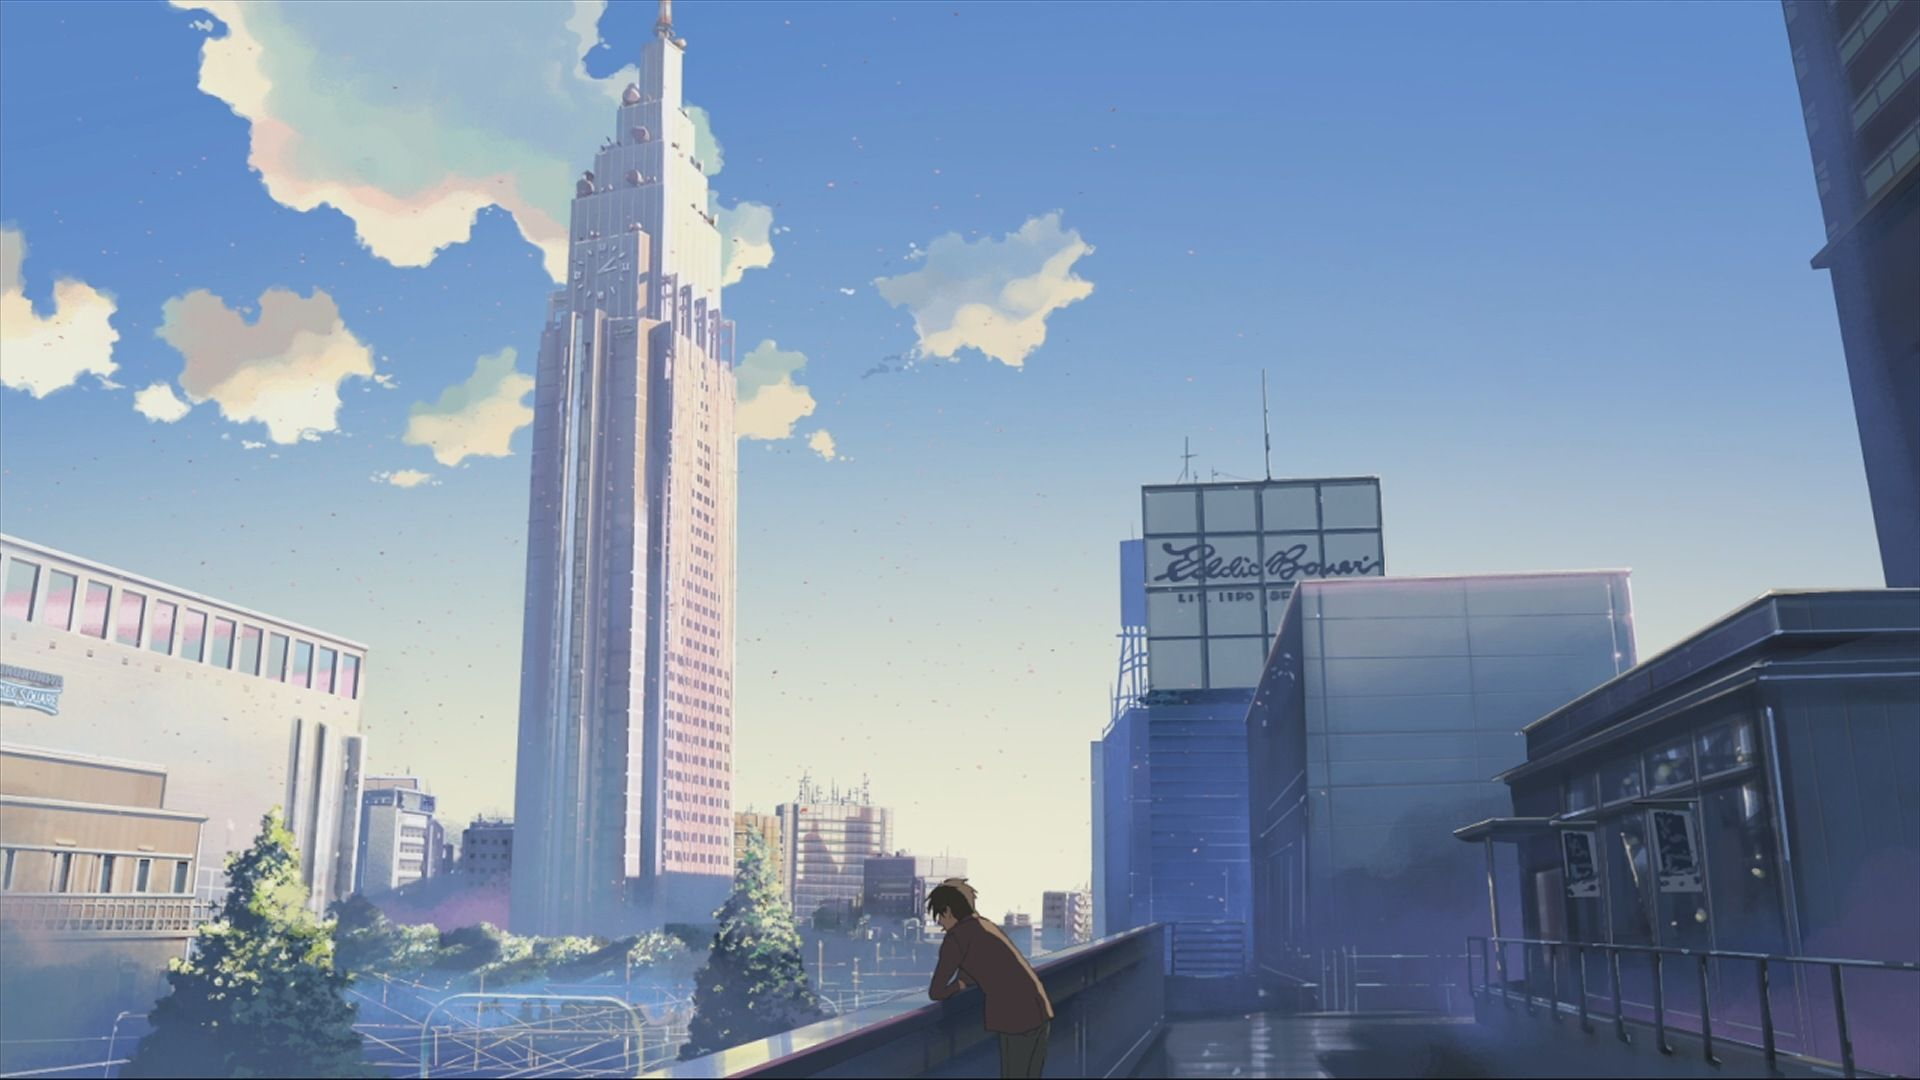 5 centimeters per second wallpaper Google Search (With